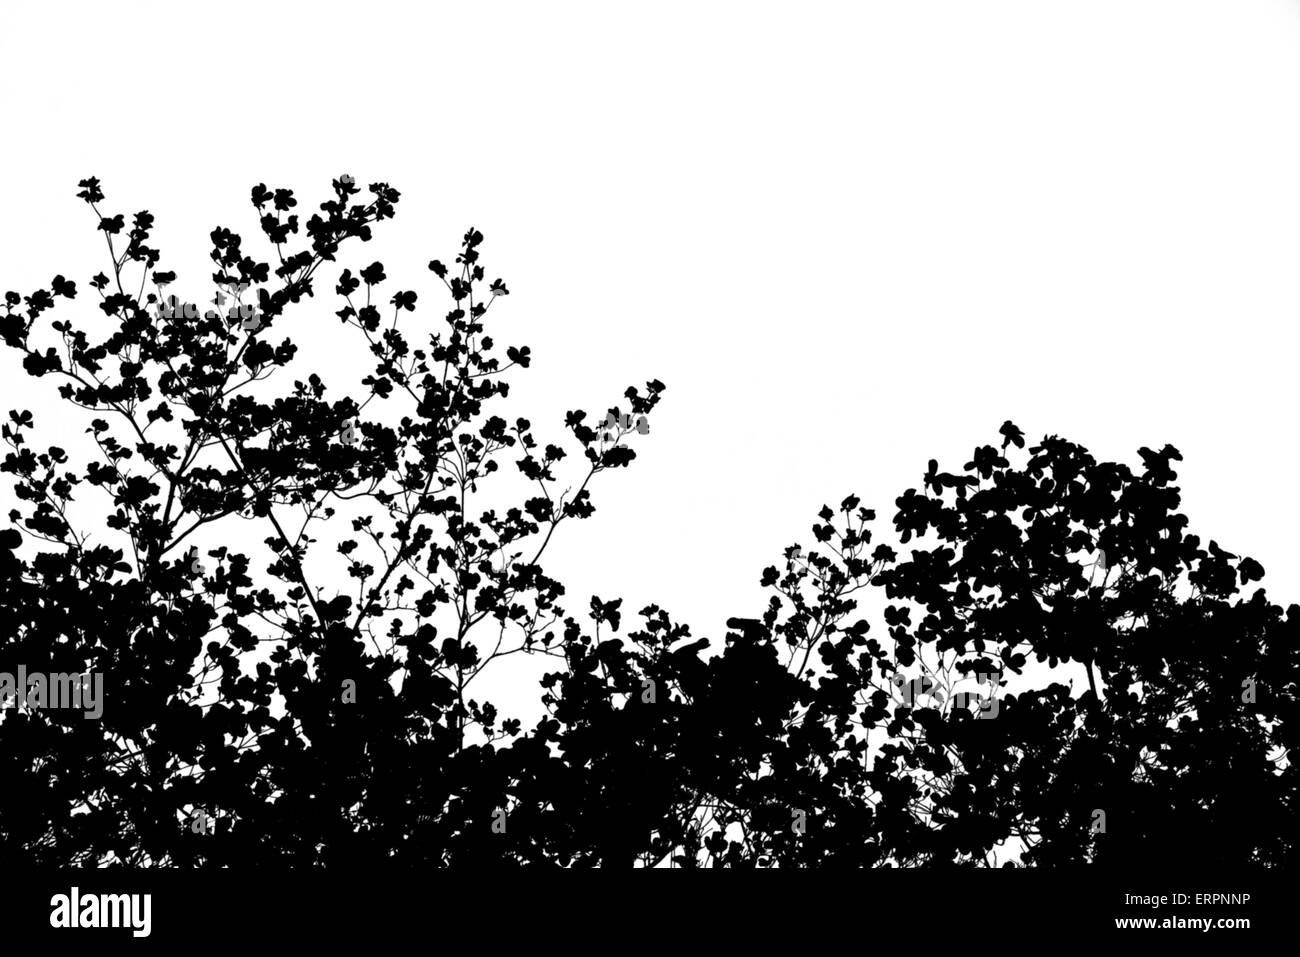 Black And White Cutout Of Cherry Blossoms